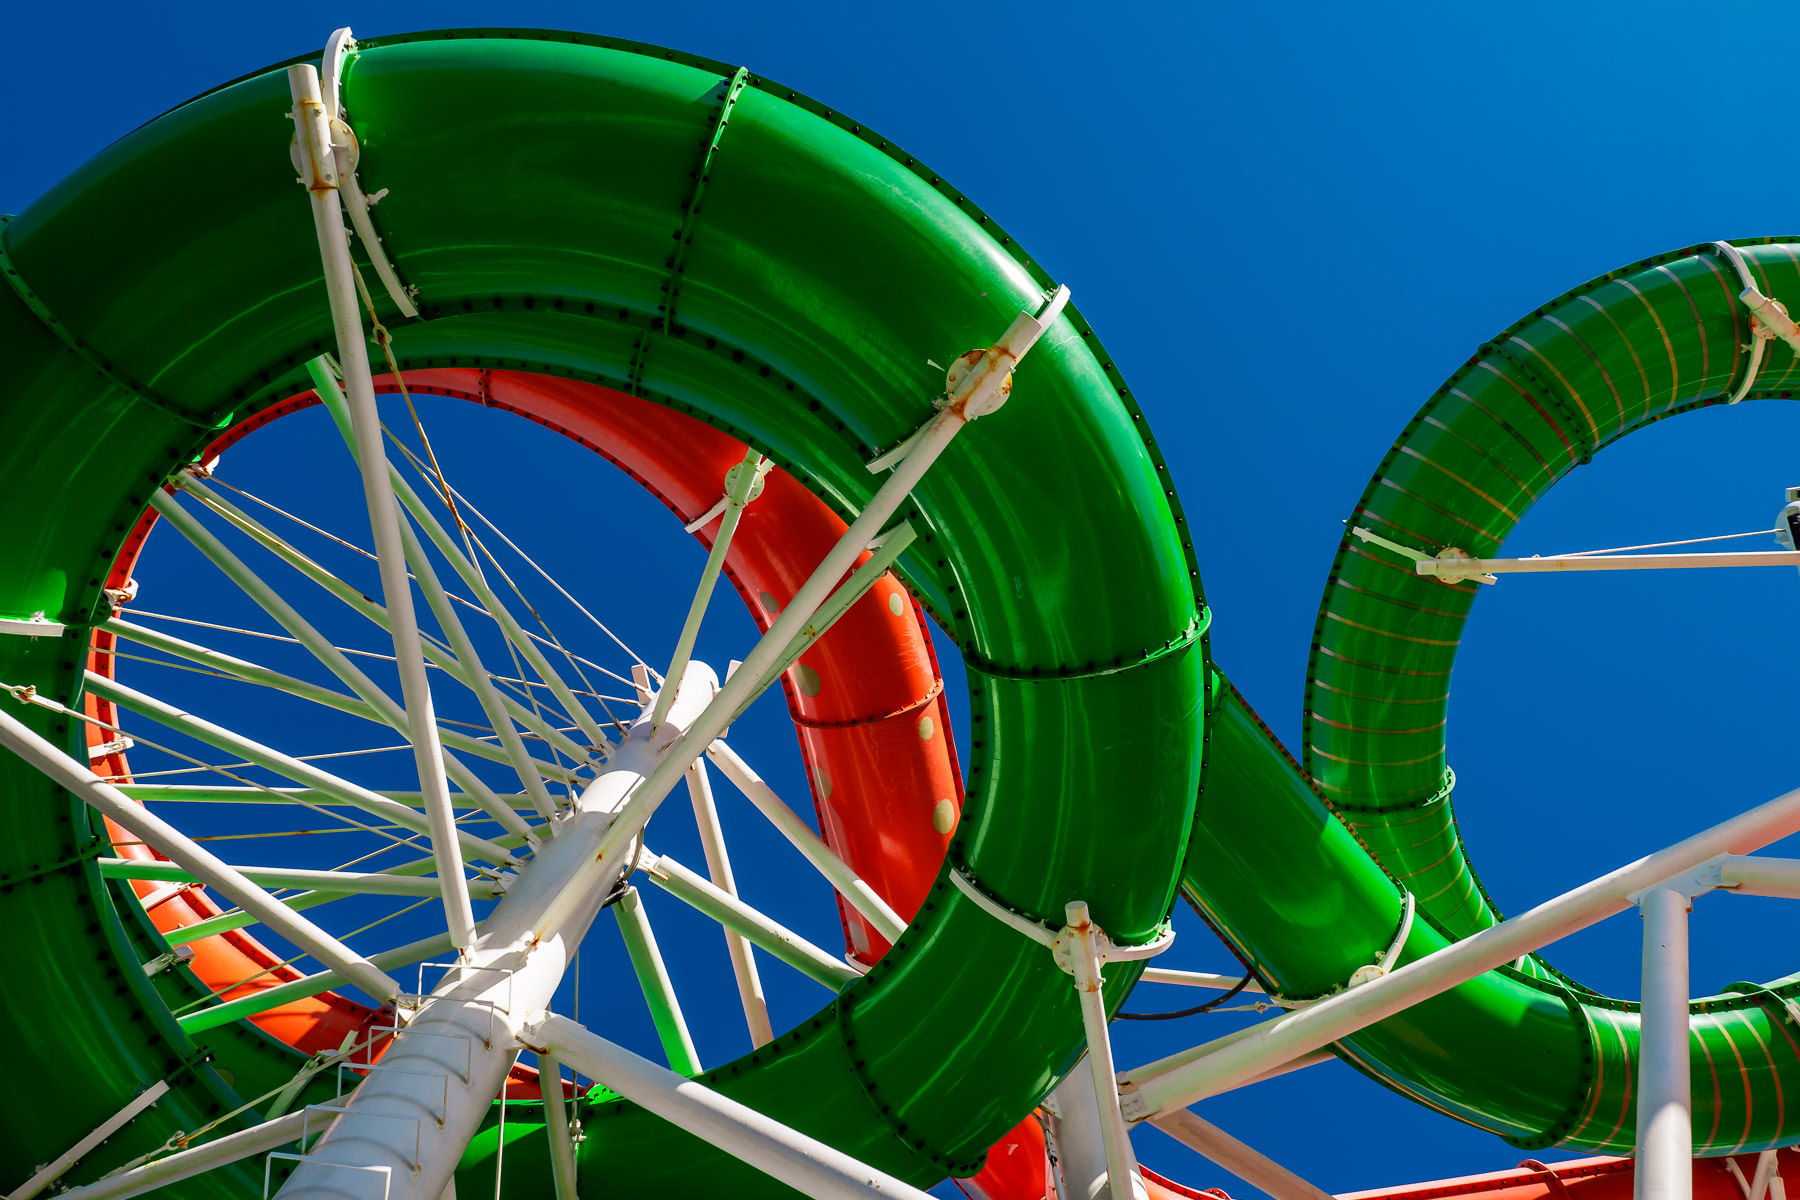 Waterslides aboard the Royal Caribbean cruise ship Liberty of the Seas.